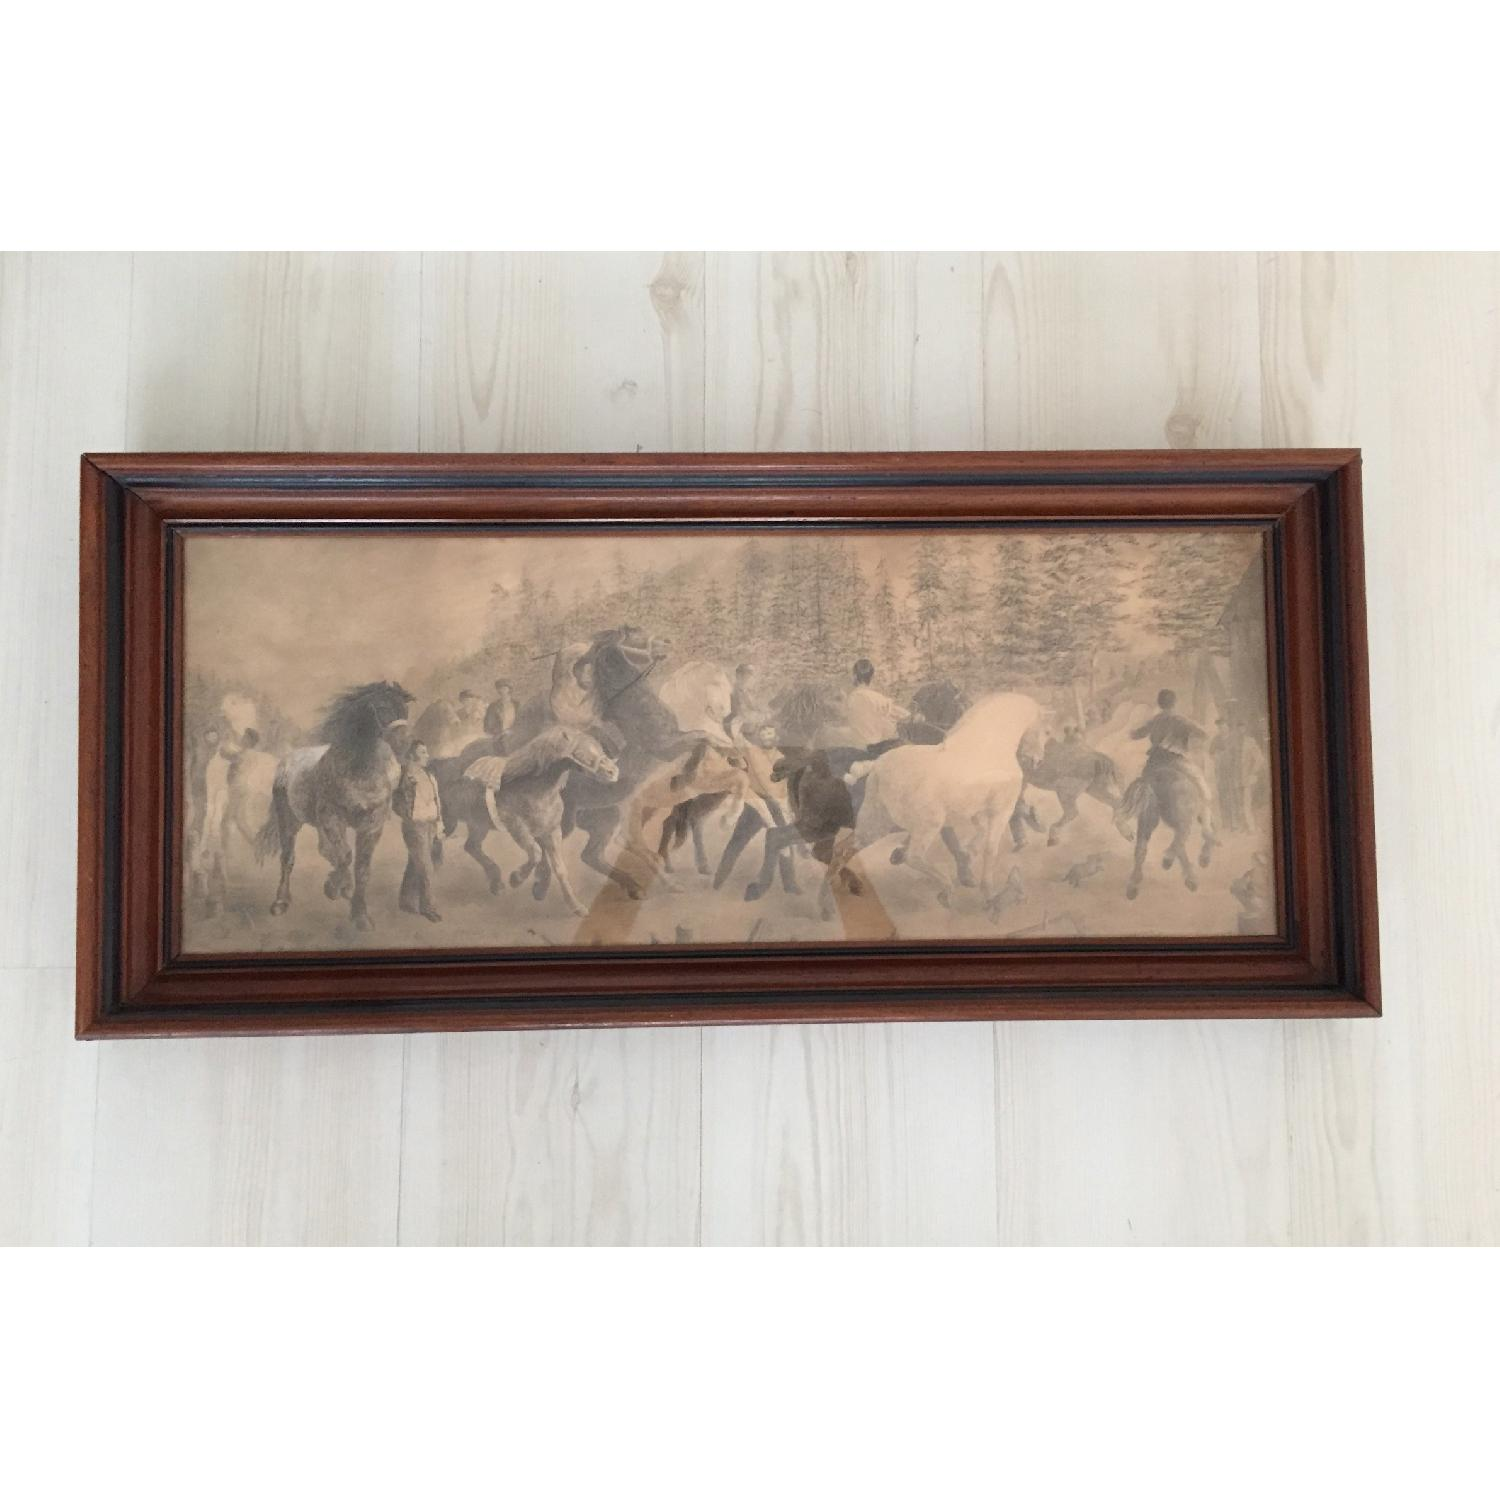 South American Hunting Scene Drawing - image-1